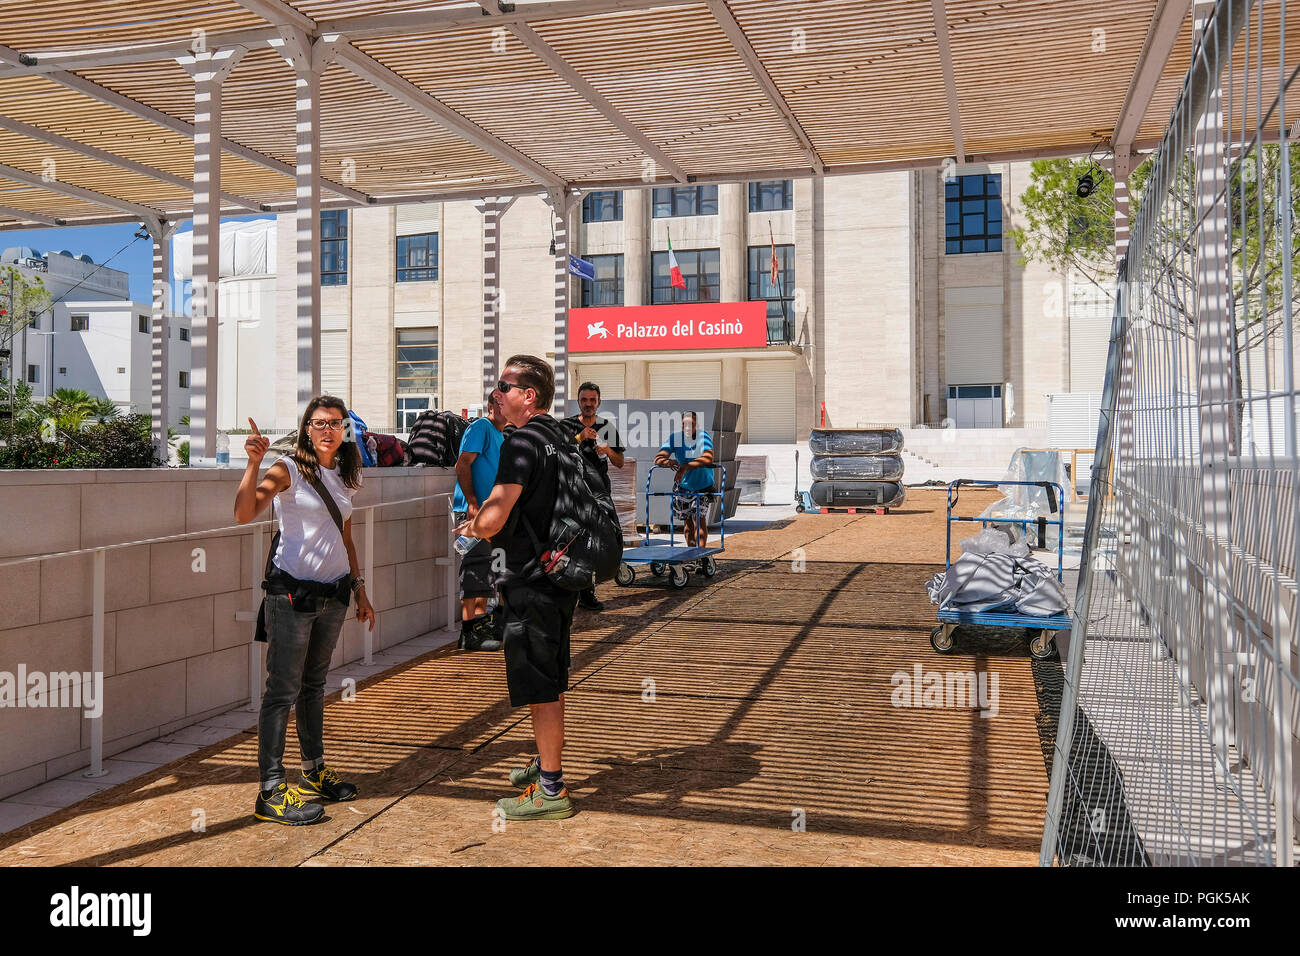 Venice, ITALY. 27 August, 2018. Of the workers observe the work to be done near the Palazzo del Cinema on August 27, 2018 in Venice, Italy. © Stefano Mazzola/Awakening/Alamy Live News - Stock Image